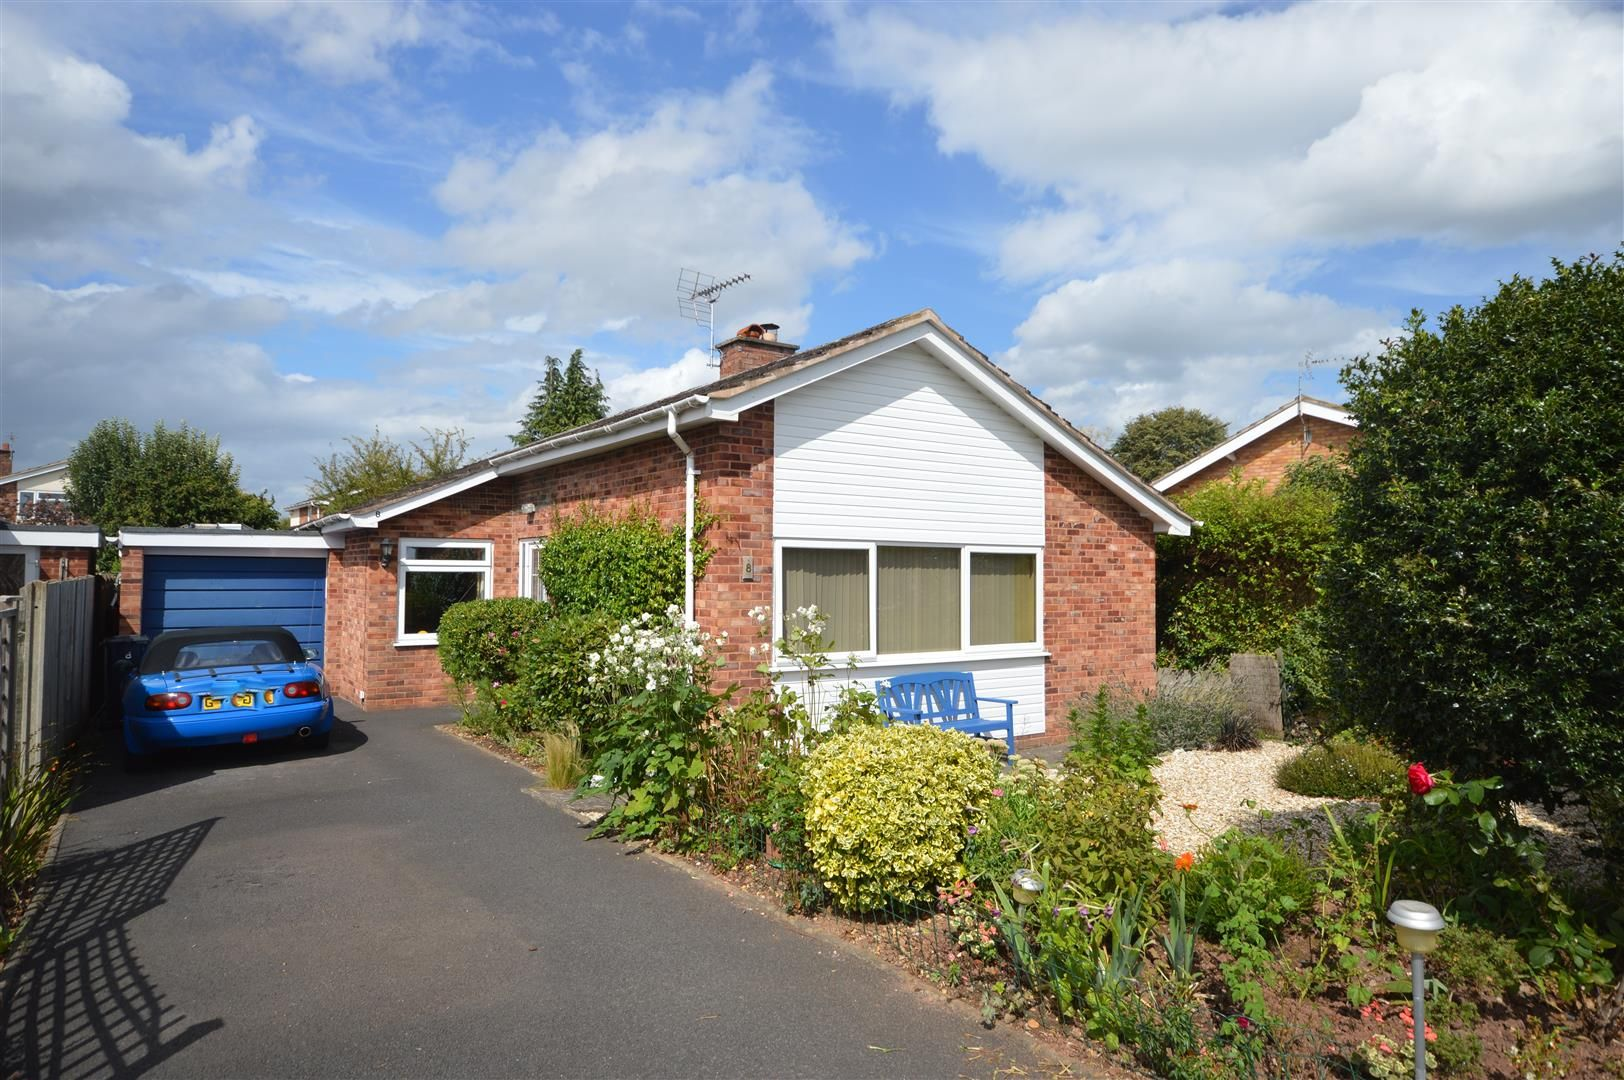 3 bed detached bungalow for sale in Bodenham, HR1